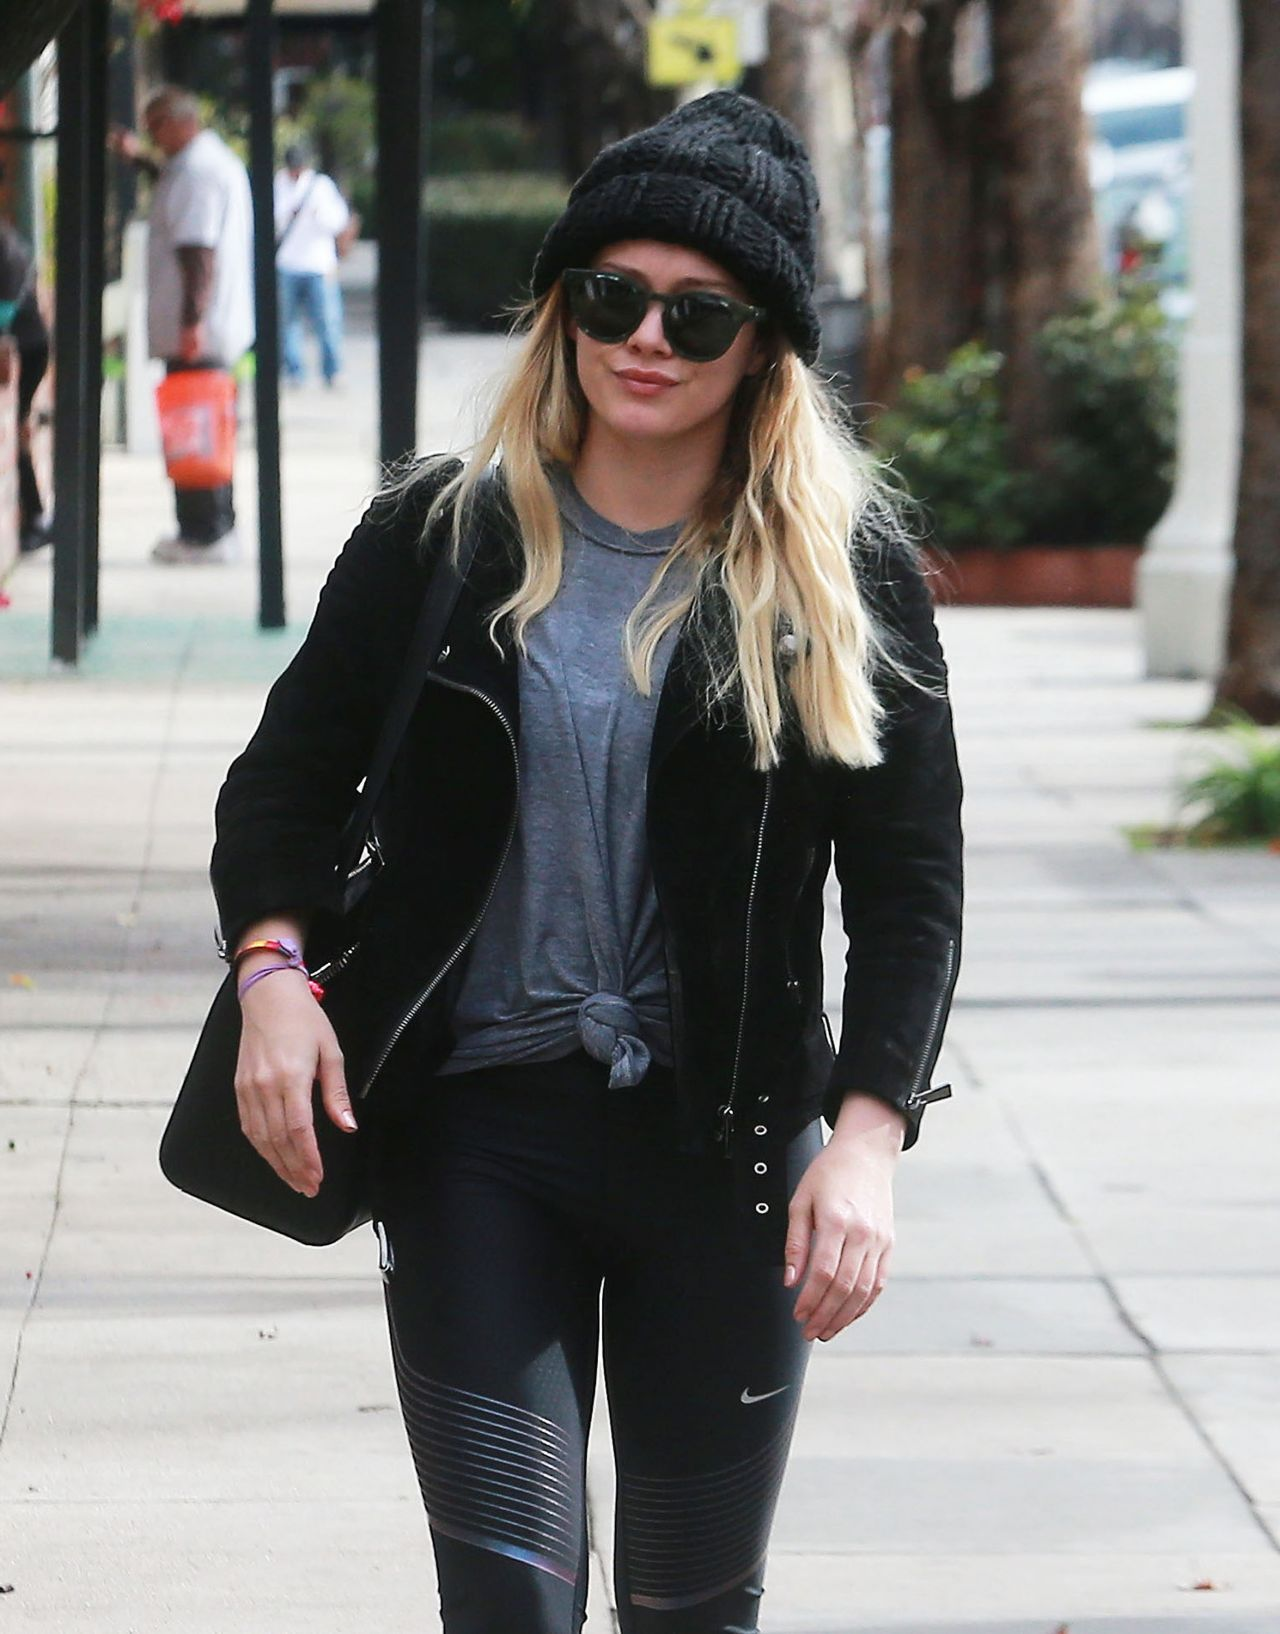 Hilary duff hilaryduff at the gym in studio city